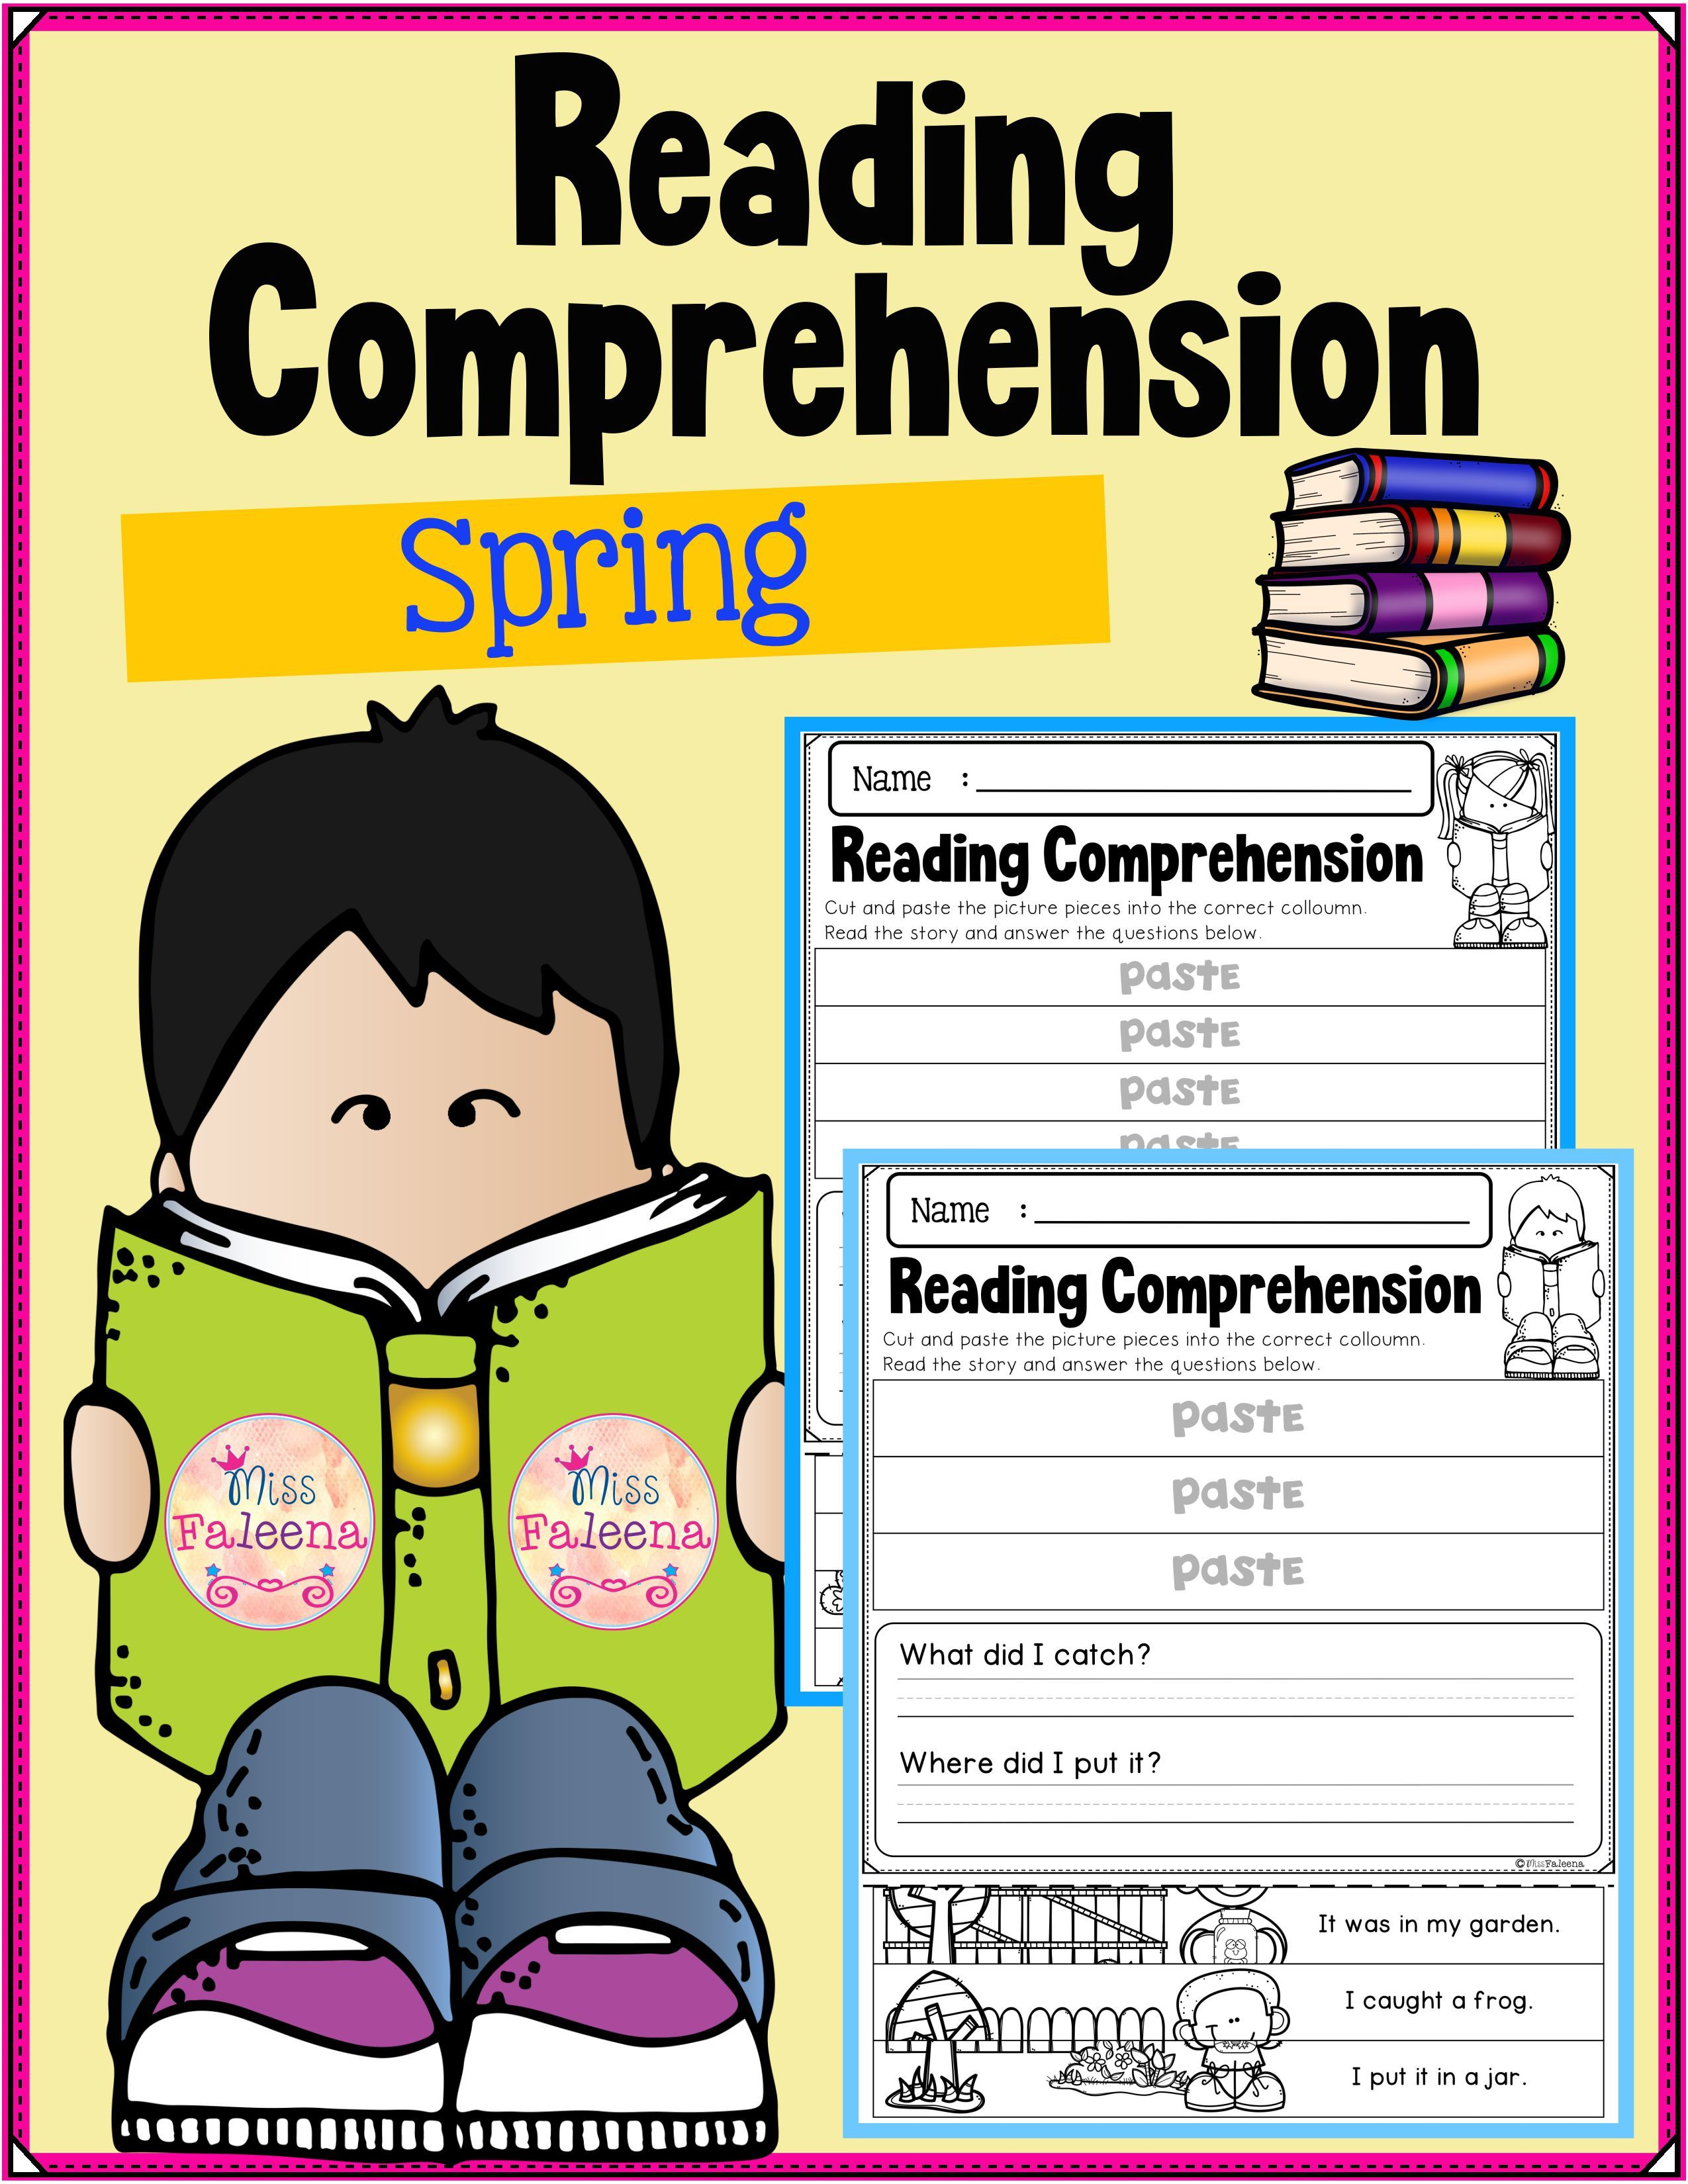 Spring Reading Comprehension Puzzles